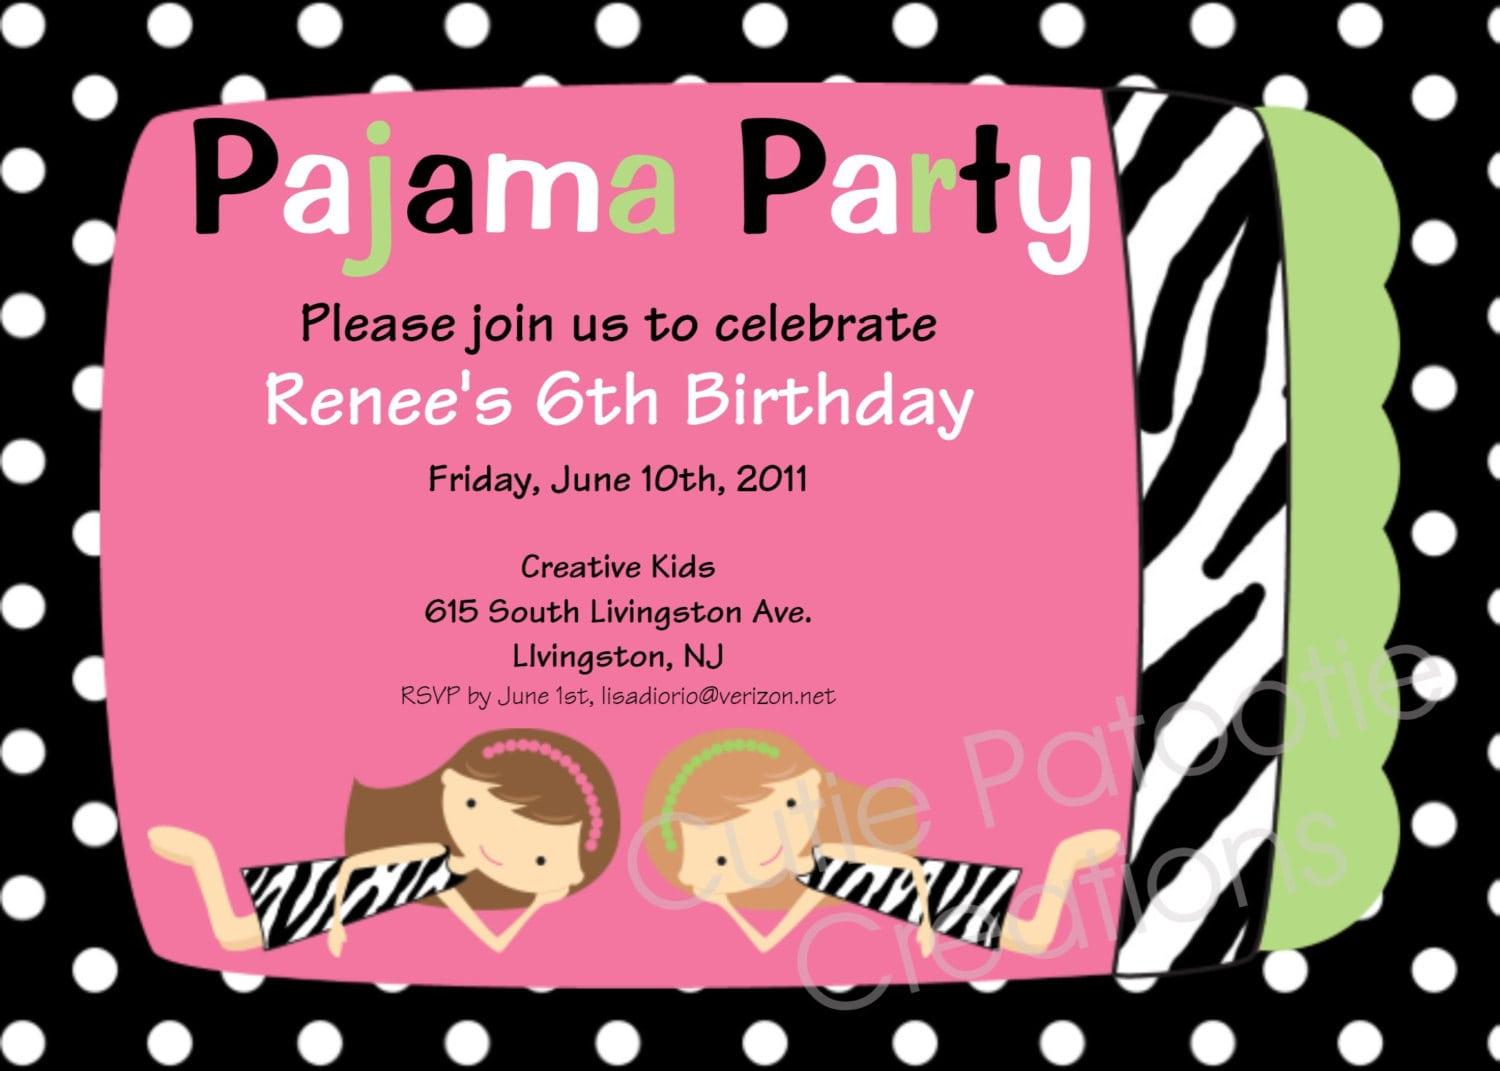 Zebra Print Pajama Birthday Party Invitation With Pink Background